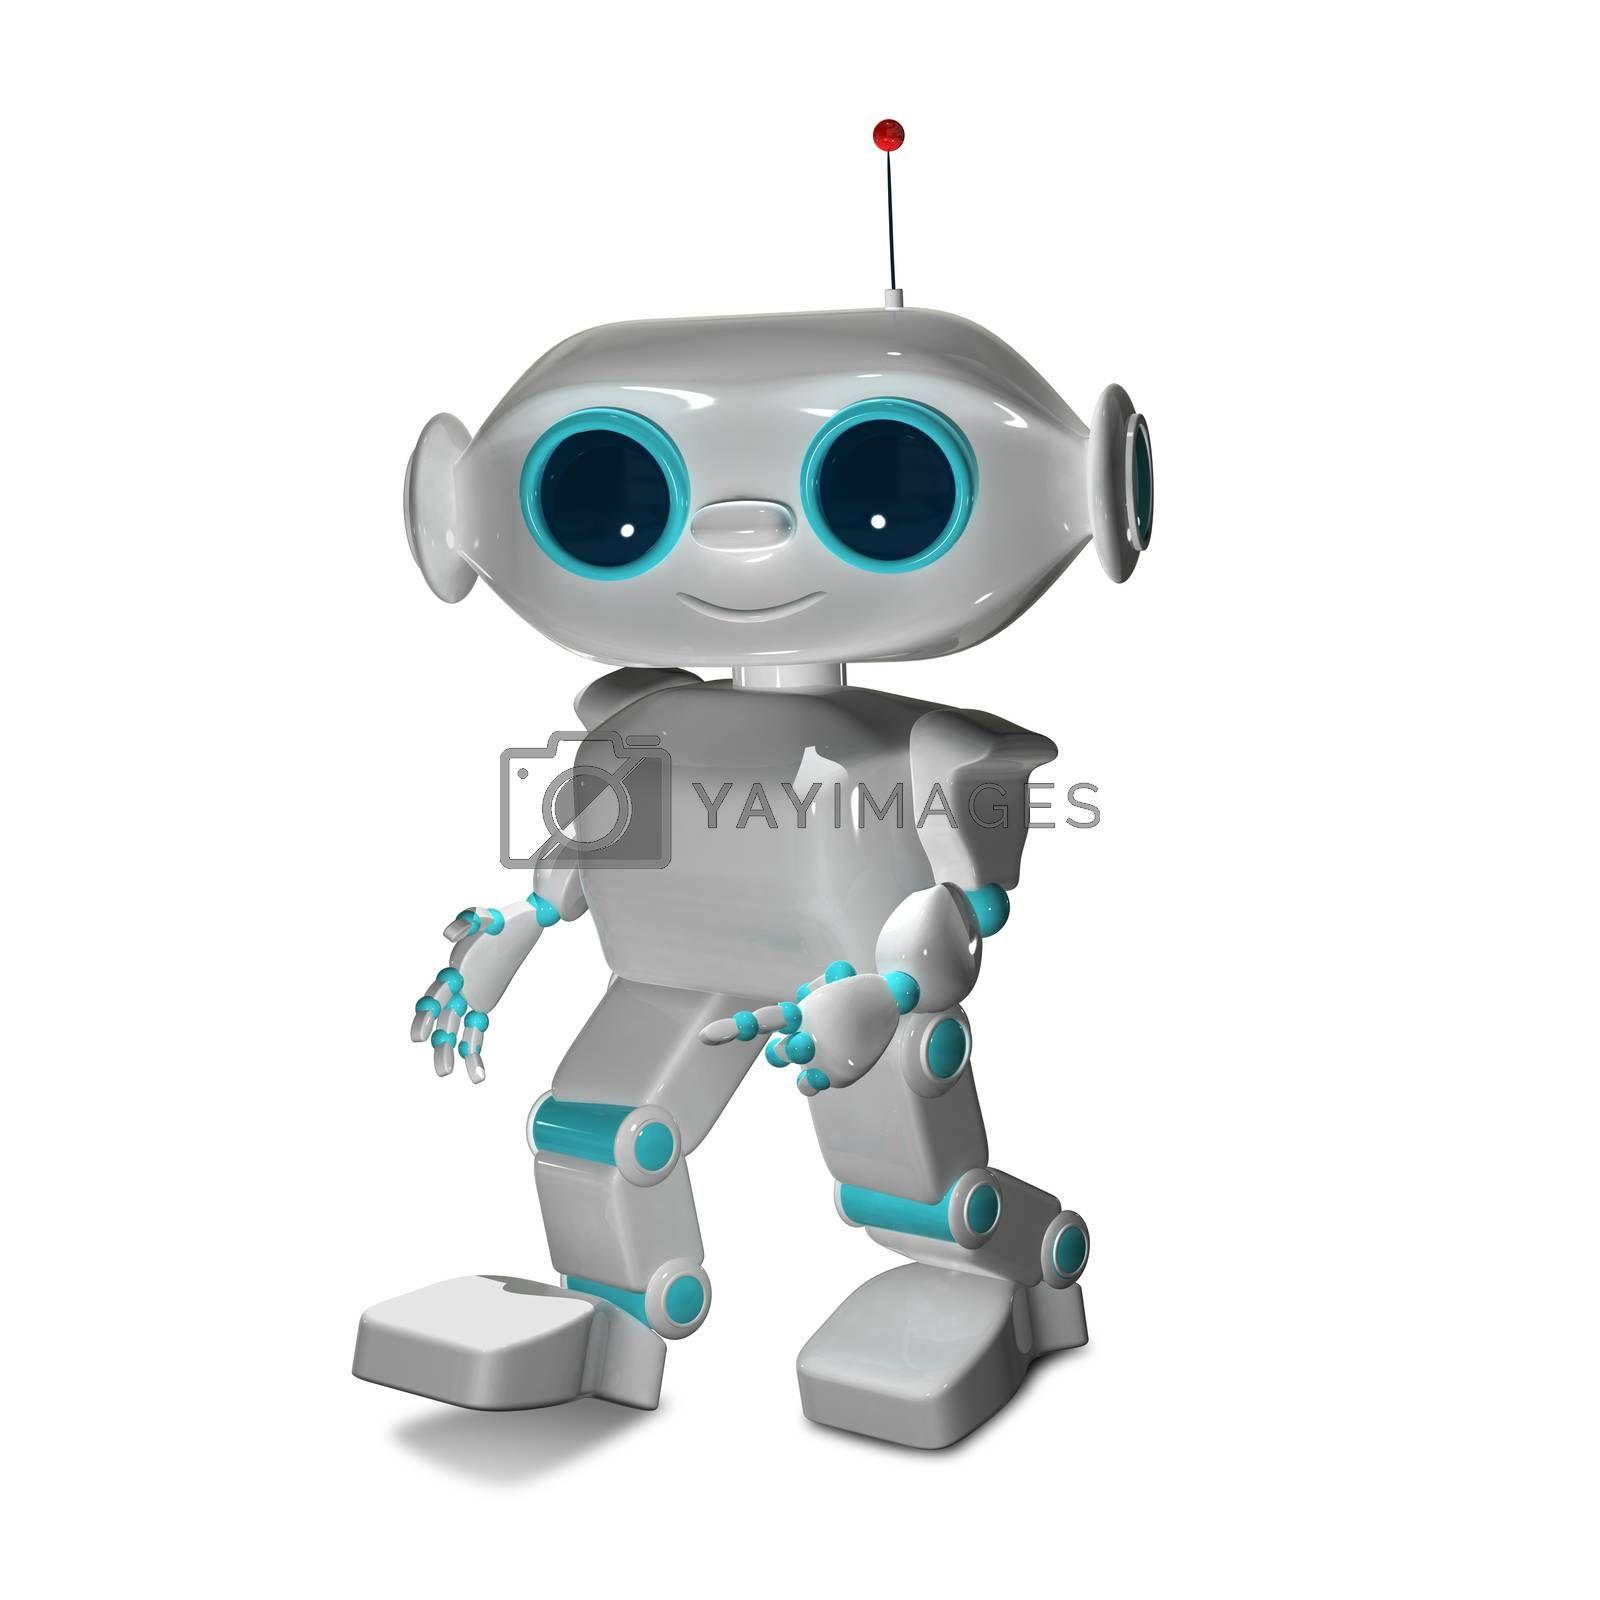 3D Illustration The Little White Robot with Antennas